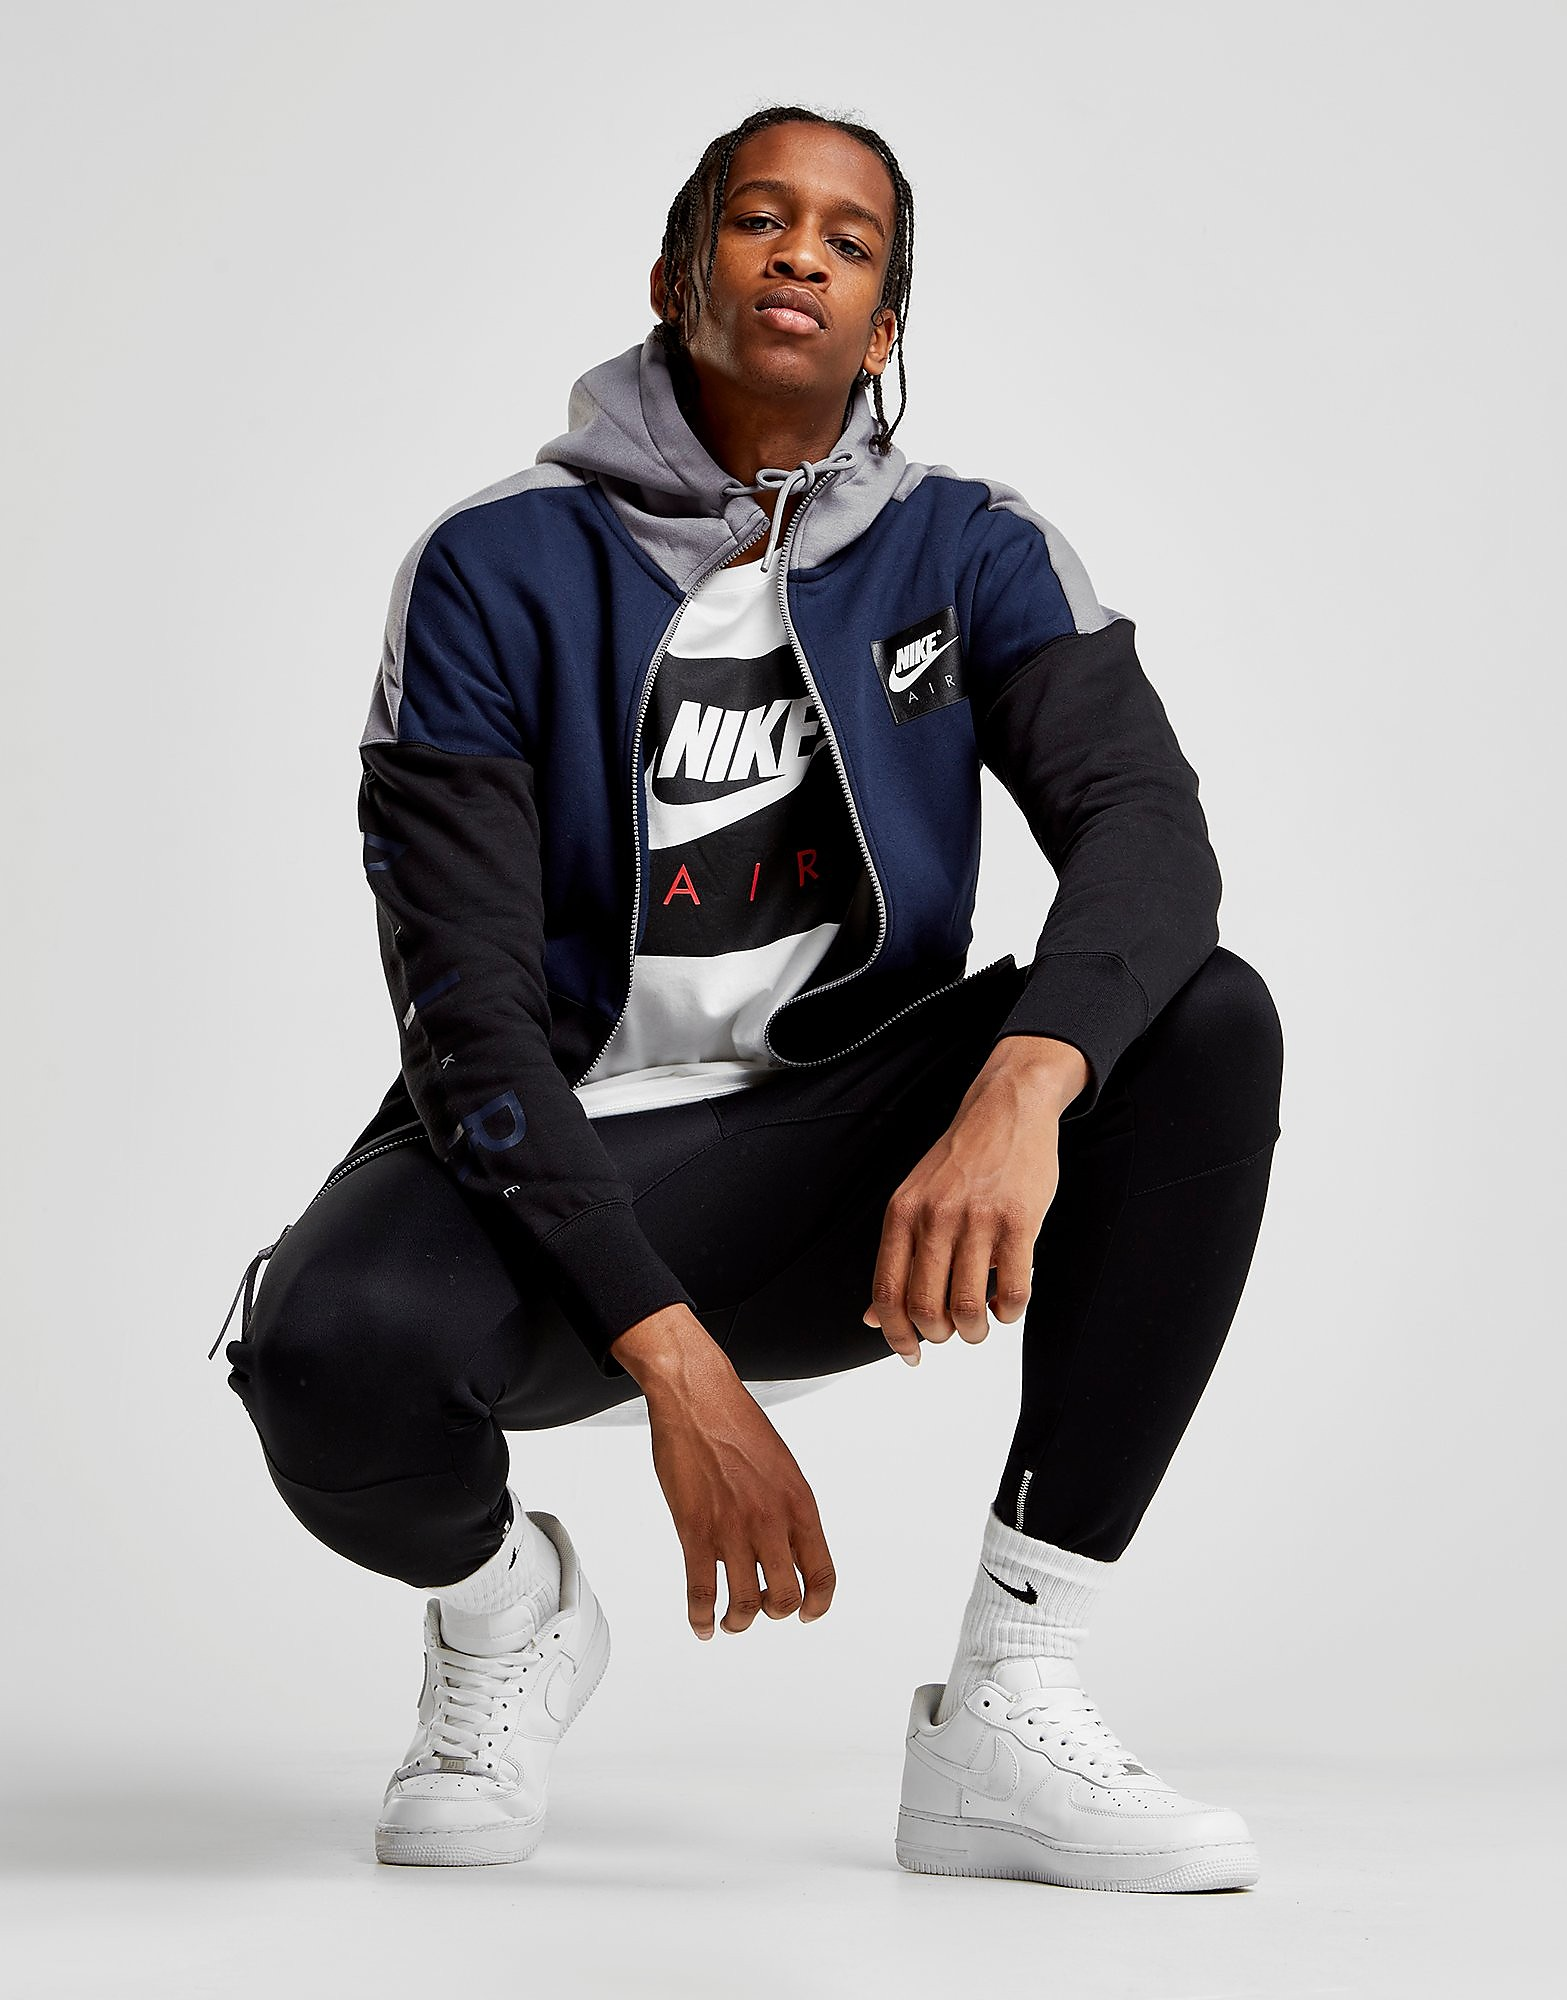 Nike Air Full Zip Fleece